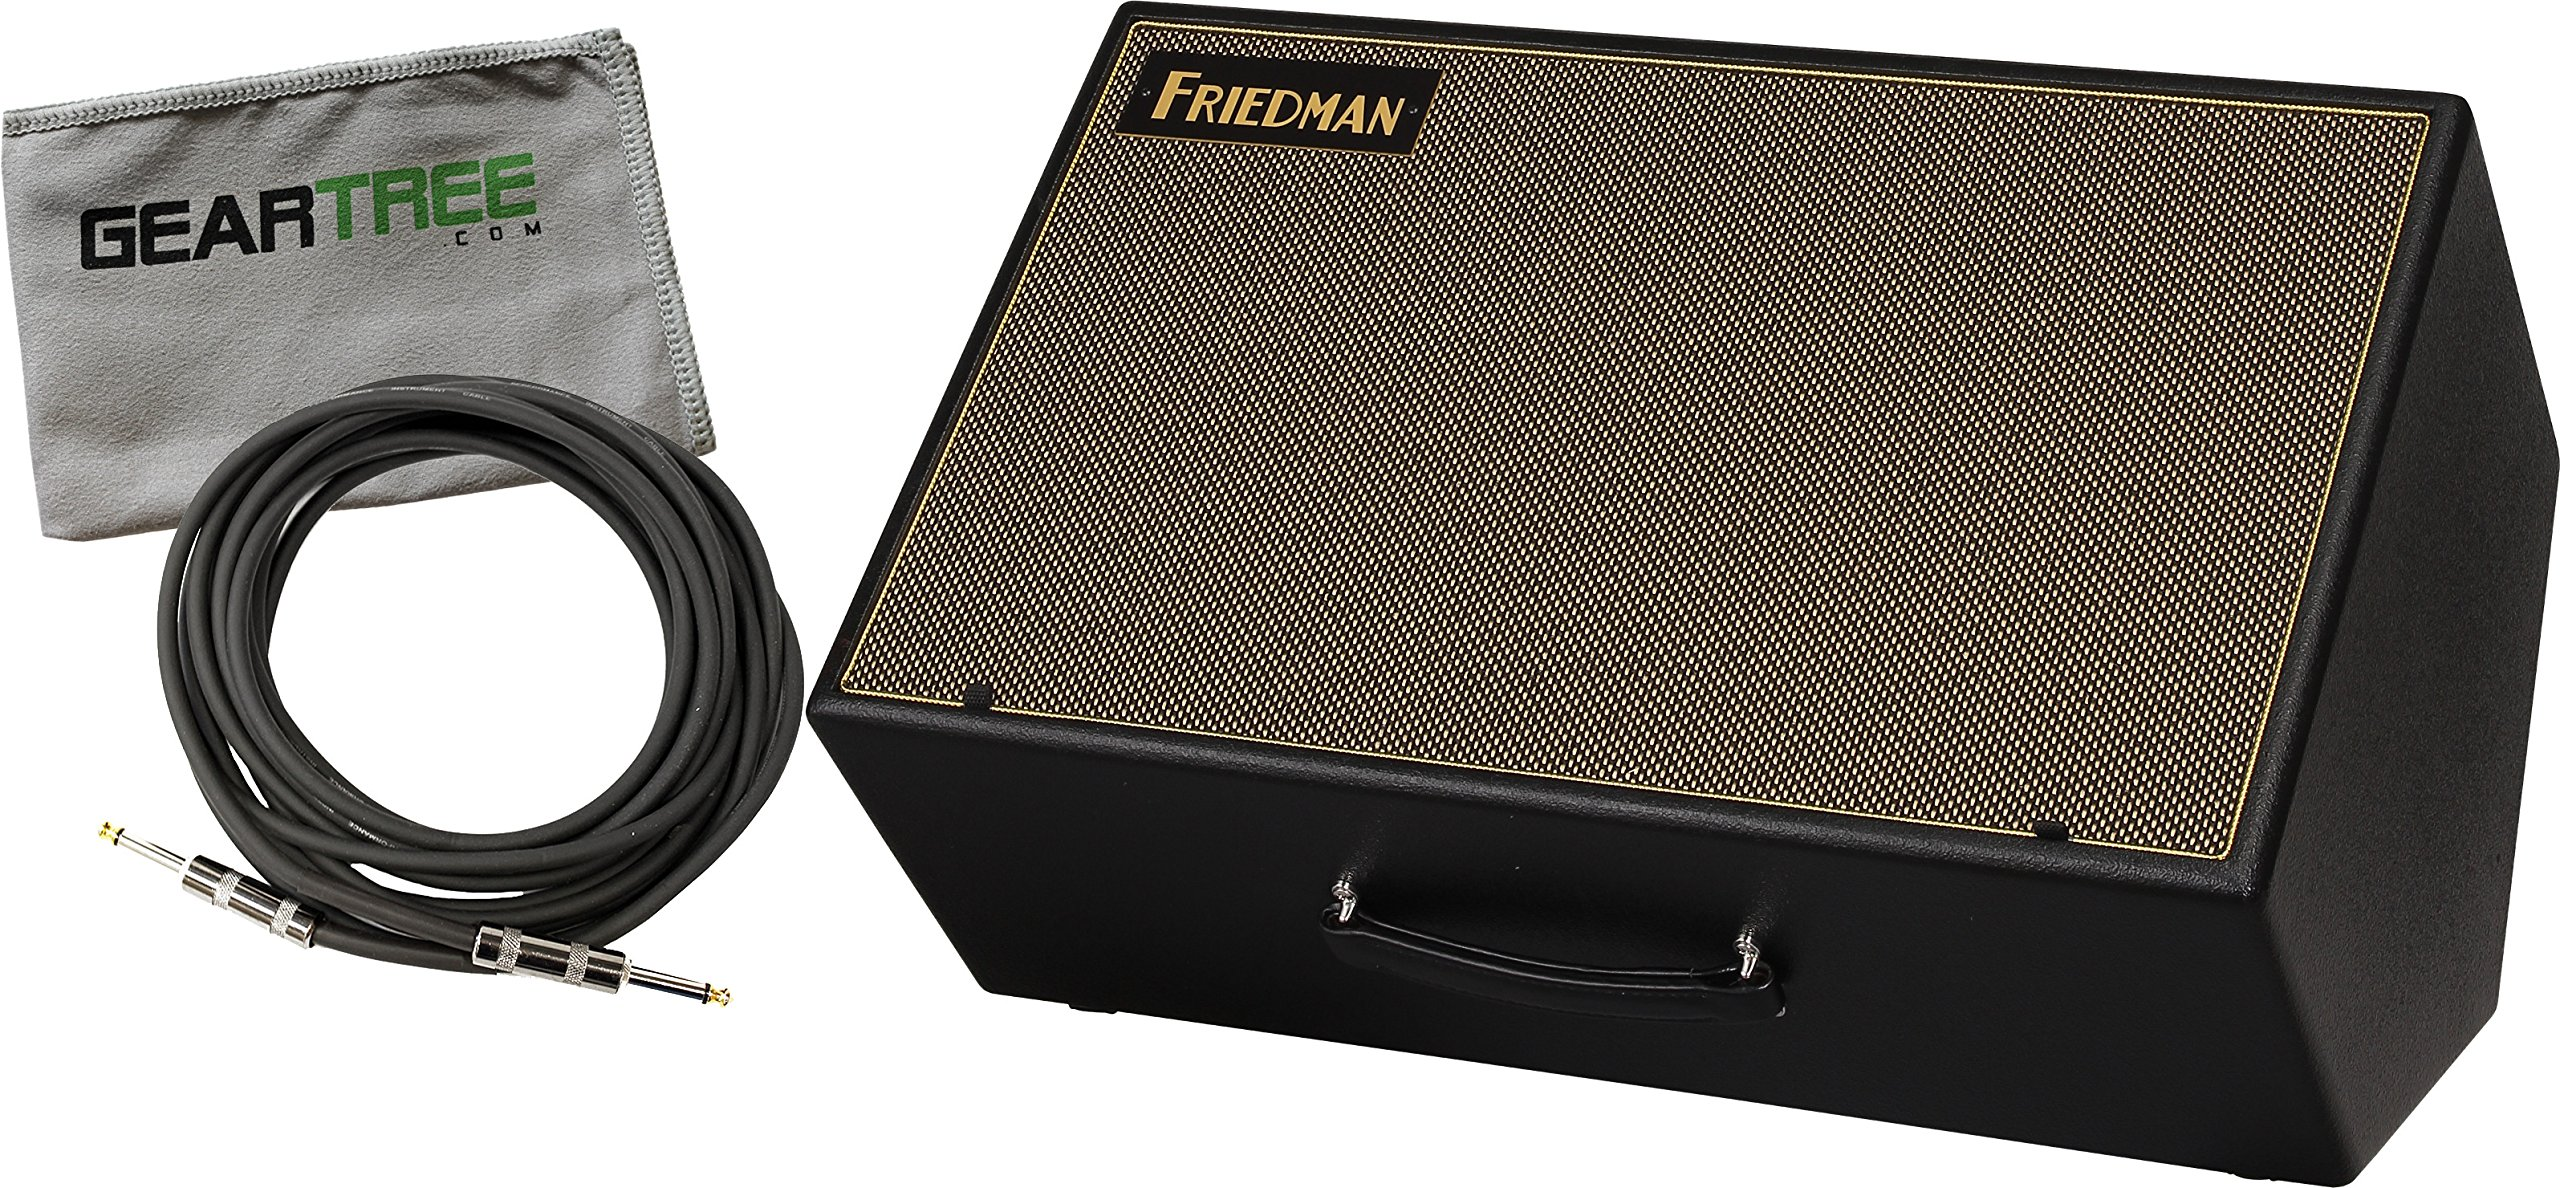 Friedman ASM-12 Active 12'' Two Way Amp Modeling Reference Monitor FRFR w/ Geartree Cloth and XLR Cable by Friedman